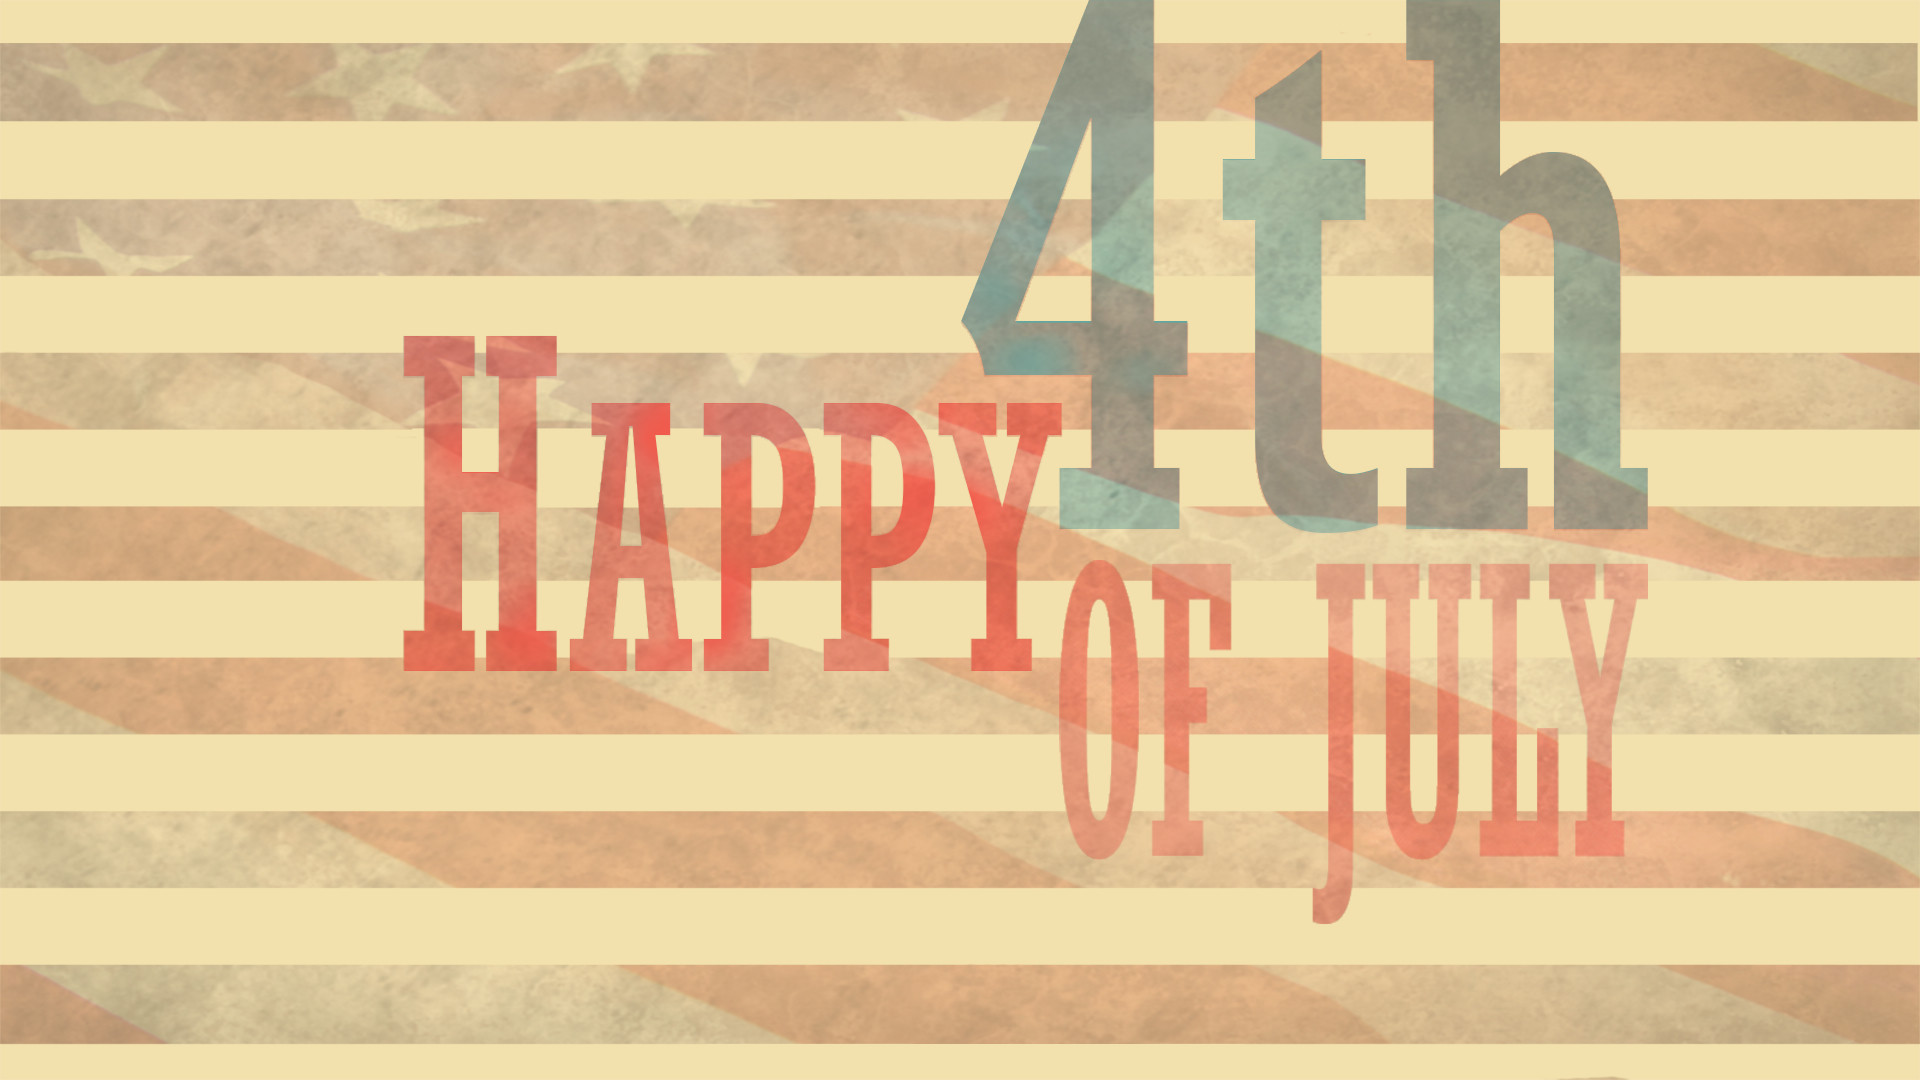 1920x1080 HD 4th Of July Image.